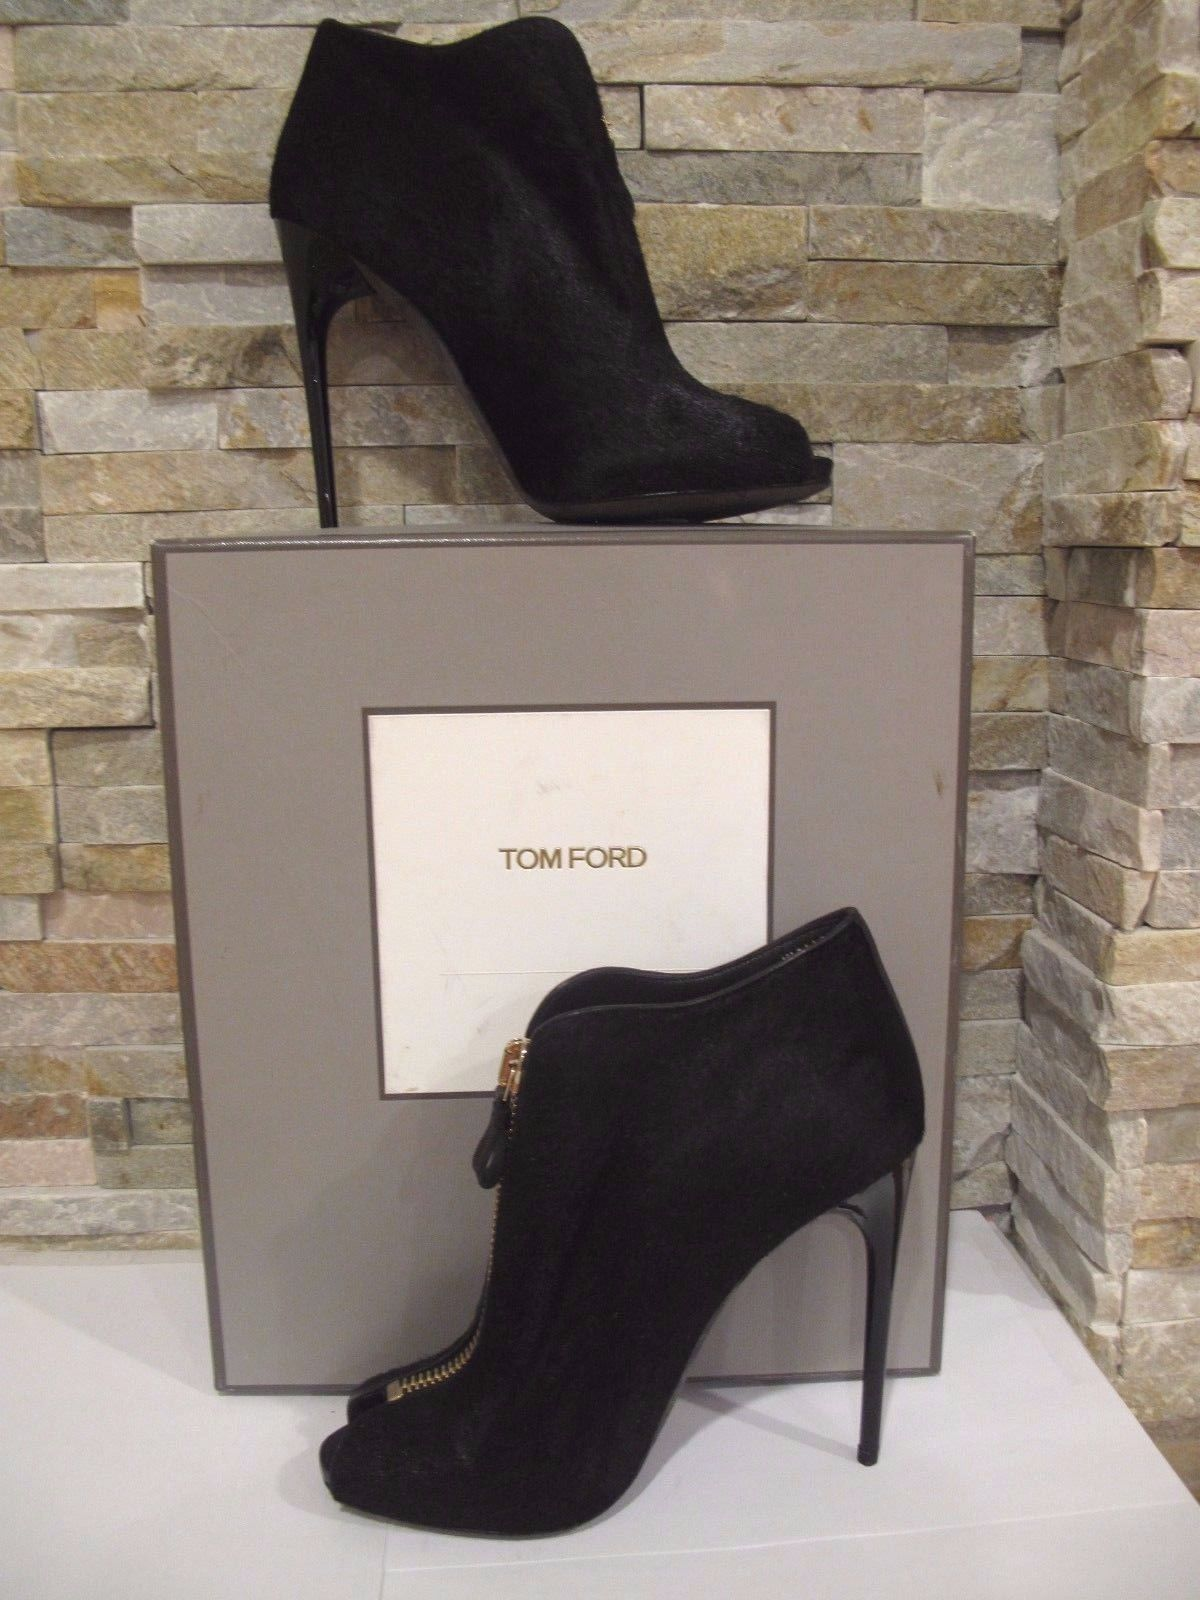 9d84cf07288 NIB! TOM FORD PONY HAIRCALF ZIP FRONT PEEP TOE BOOTIE SZ 41, US 10.5 ...